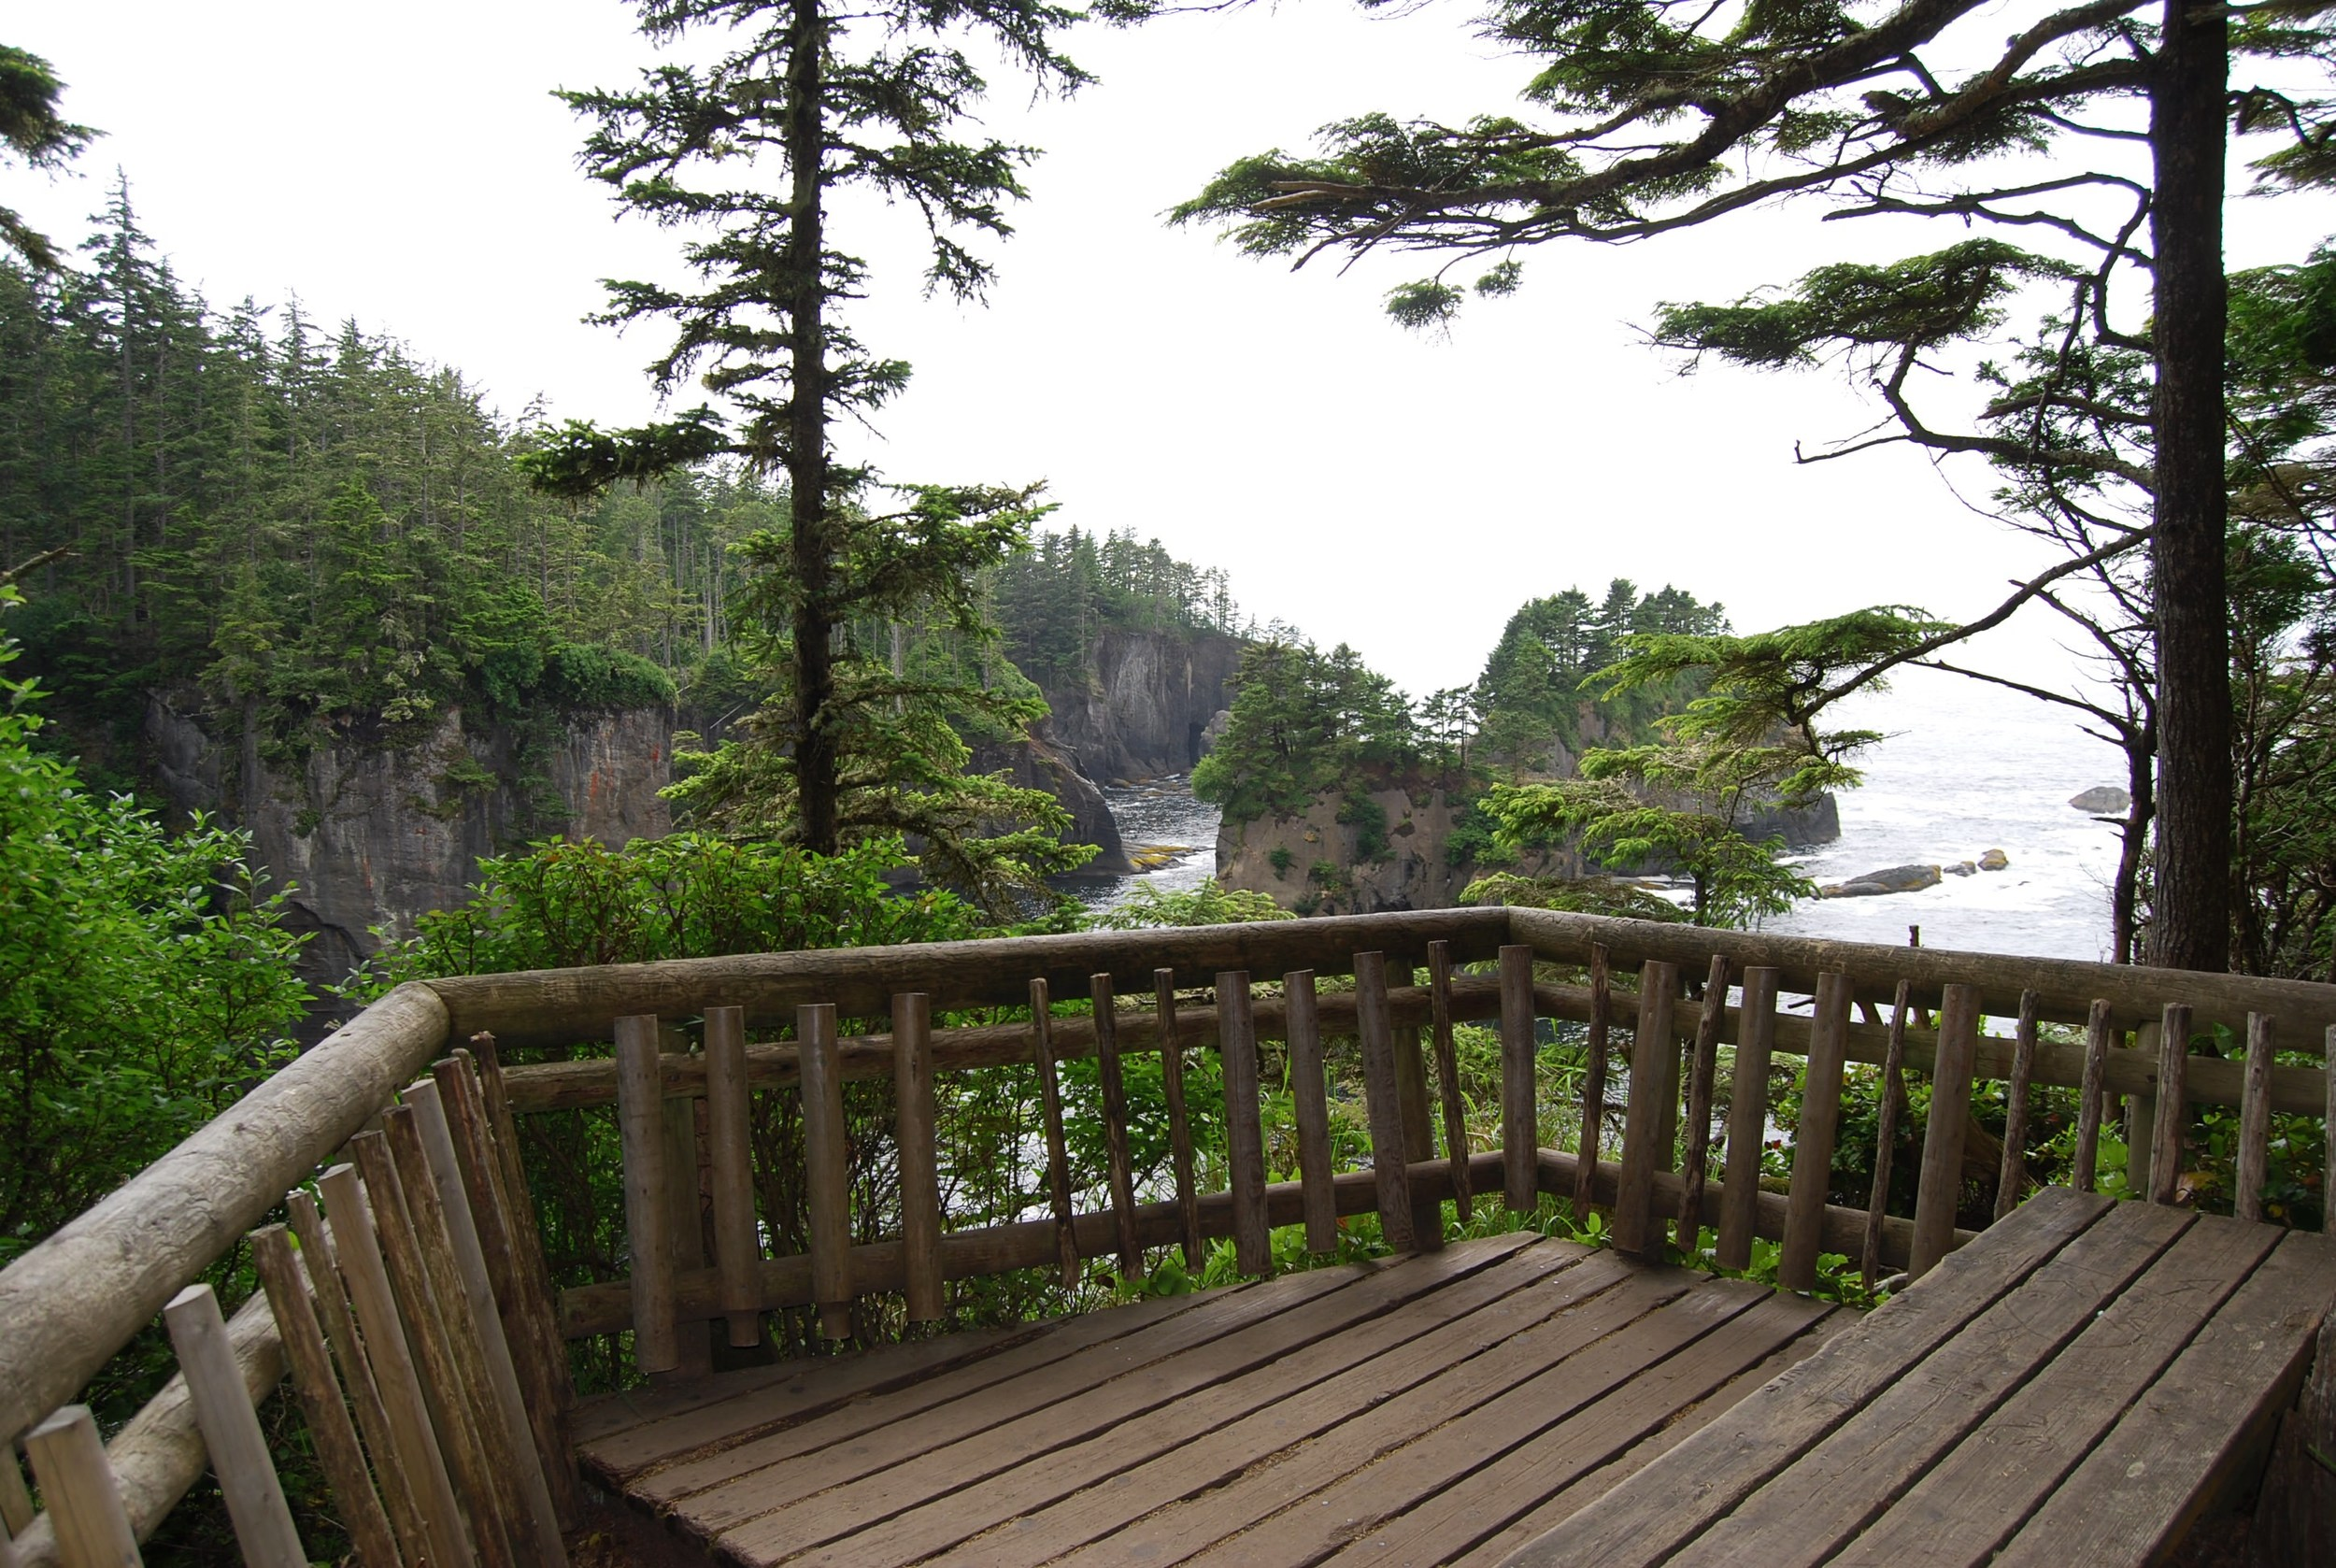 Custom Tour: Stay an extra night and visit the most northwestern point at Cape Flattery!